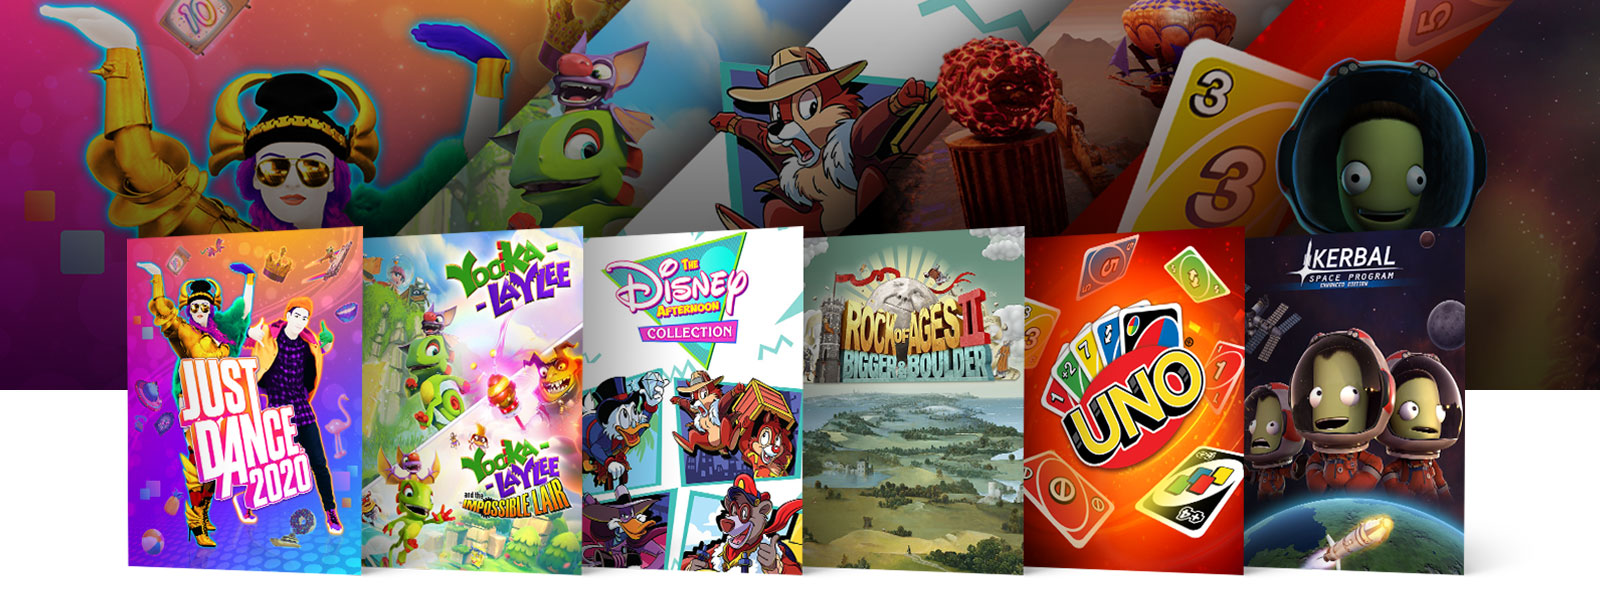 A collage of scenes and box art from Xbox One games on sale. JUST DANCE 2020, Yooka-Laylee + Yooka ATIL Bundle, The Disney Afternoon Collection, Rock of Ages 2: Bigger and Boulder, UNO, and Kerbal Space Program